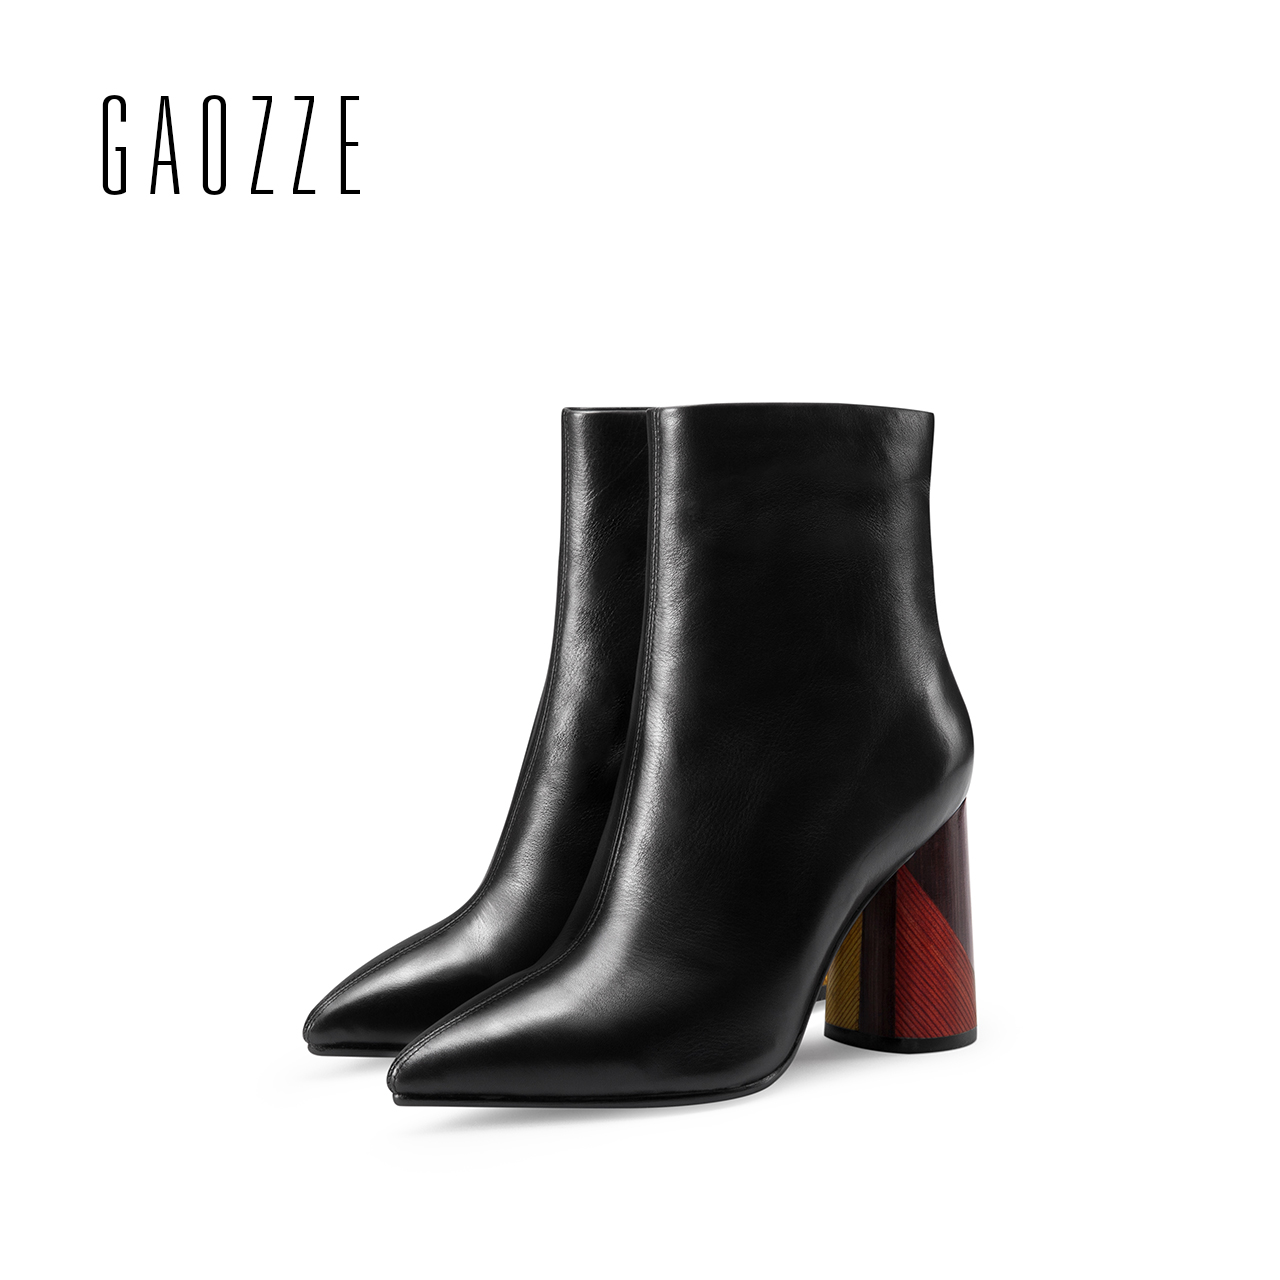 GAOZZE women boots genuine leather pointed high-heeled ankle boots for women side zipper thick heel women boots 2017 autumn new 2017 new women s genuine leather boots motorcycle boots rough with in tube high heeled boots thick wool really pima ding